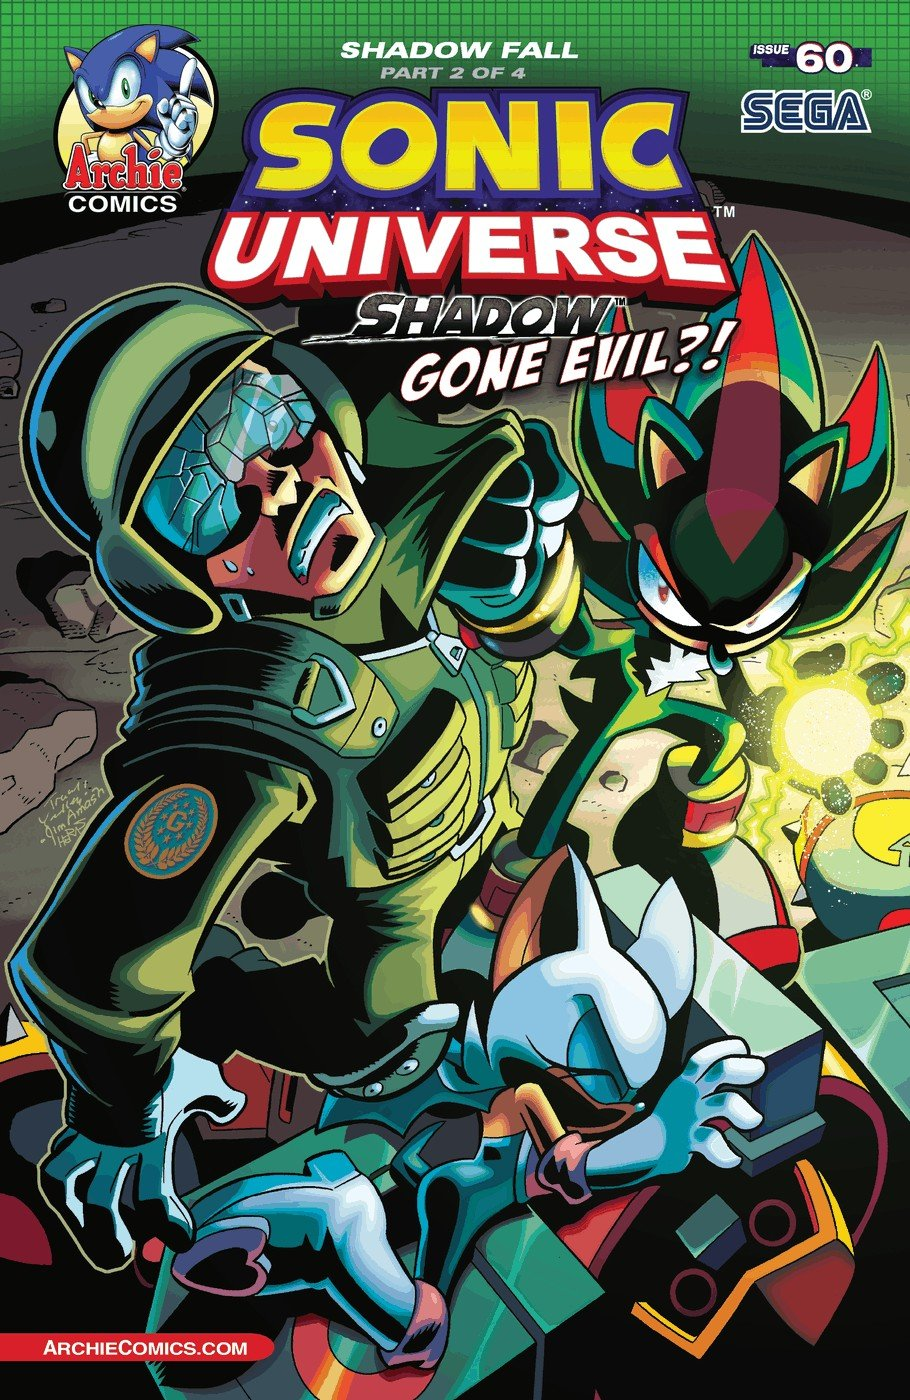 Sonic Universe 060 (March 2014)